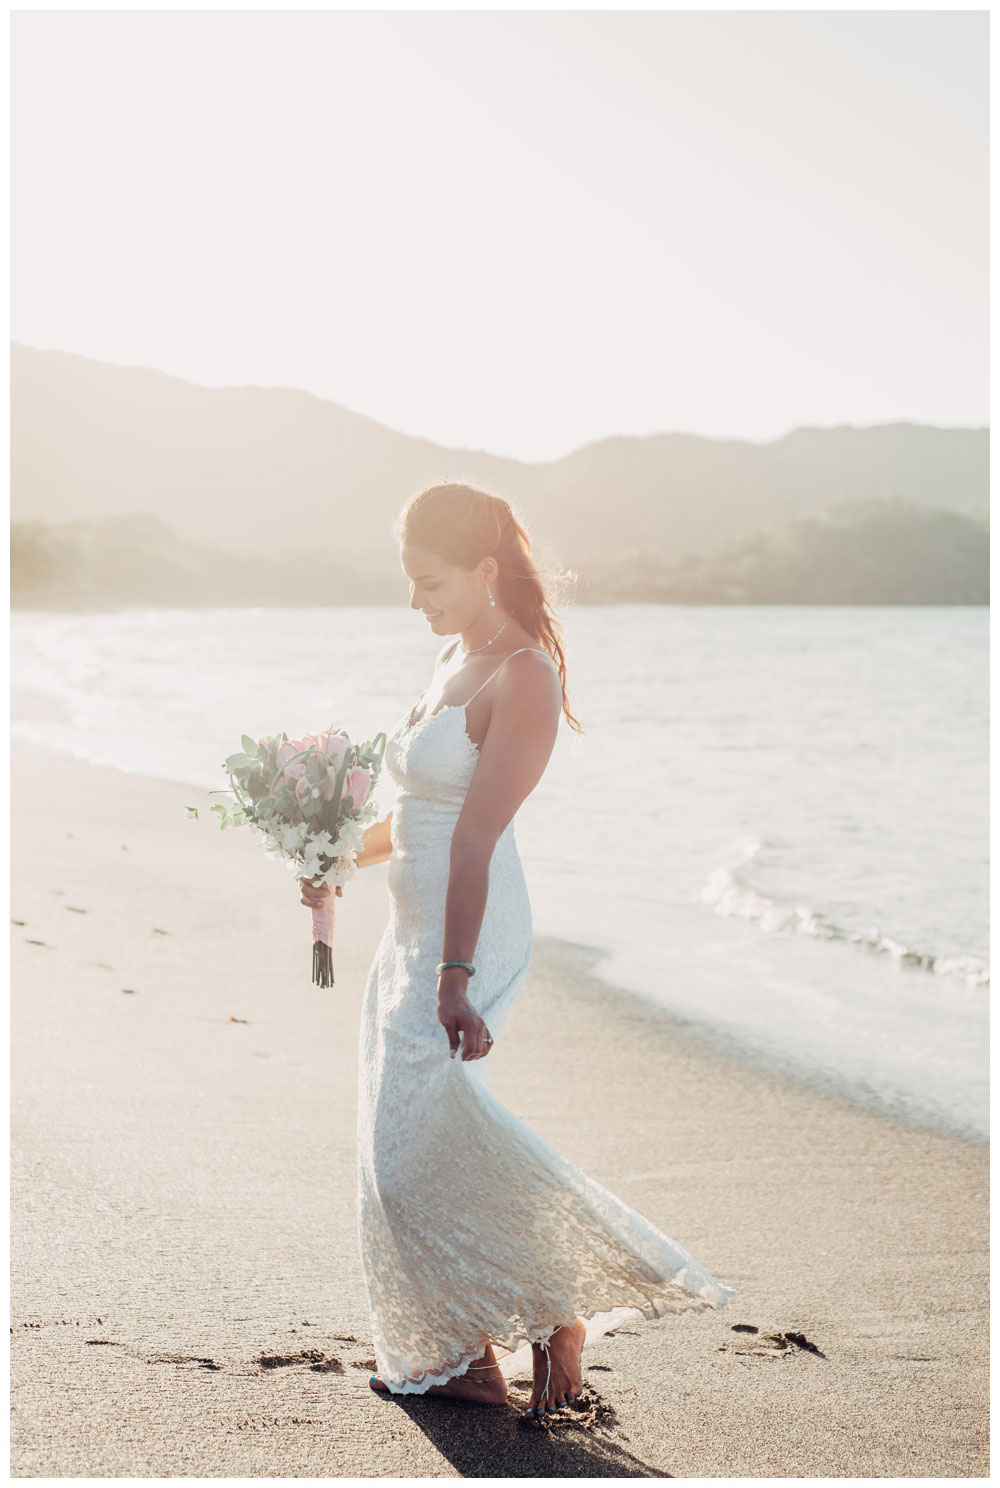 Bride dancing and twirling her dress on the beach in Costa Rica. Wedding in Guanacaste Costa Rica. Photographed by Kristen M. Brown, Samba to the Sea Photography.